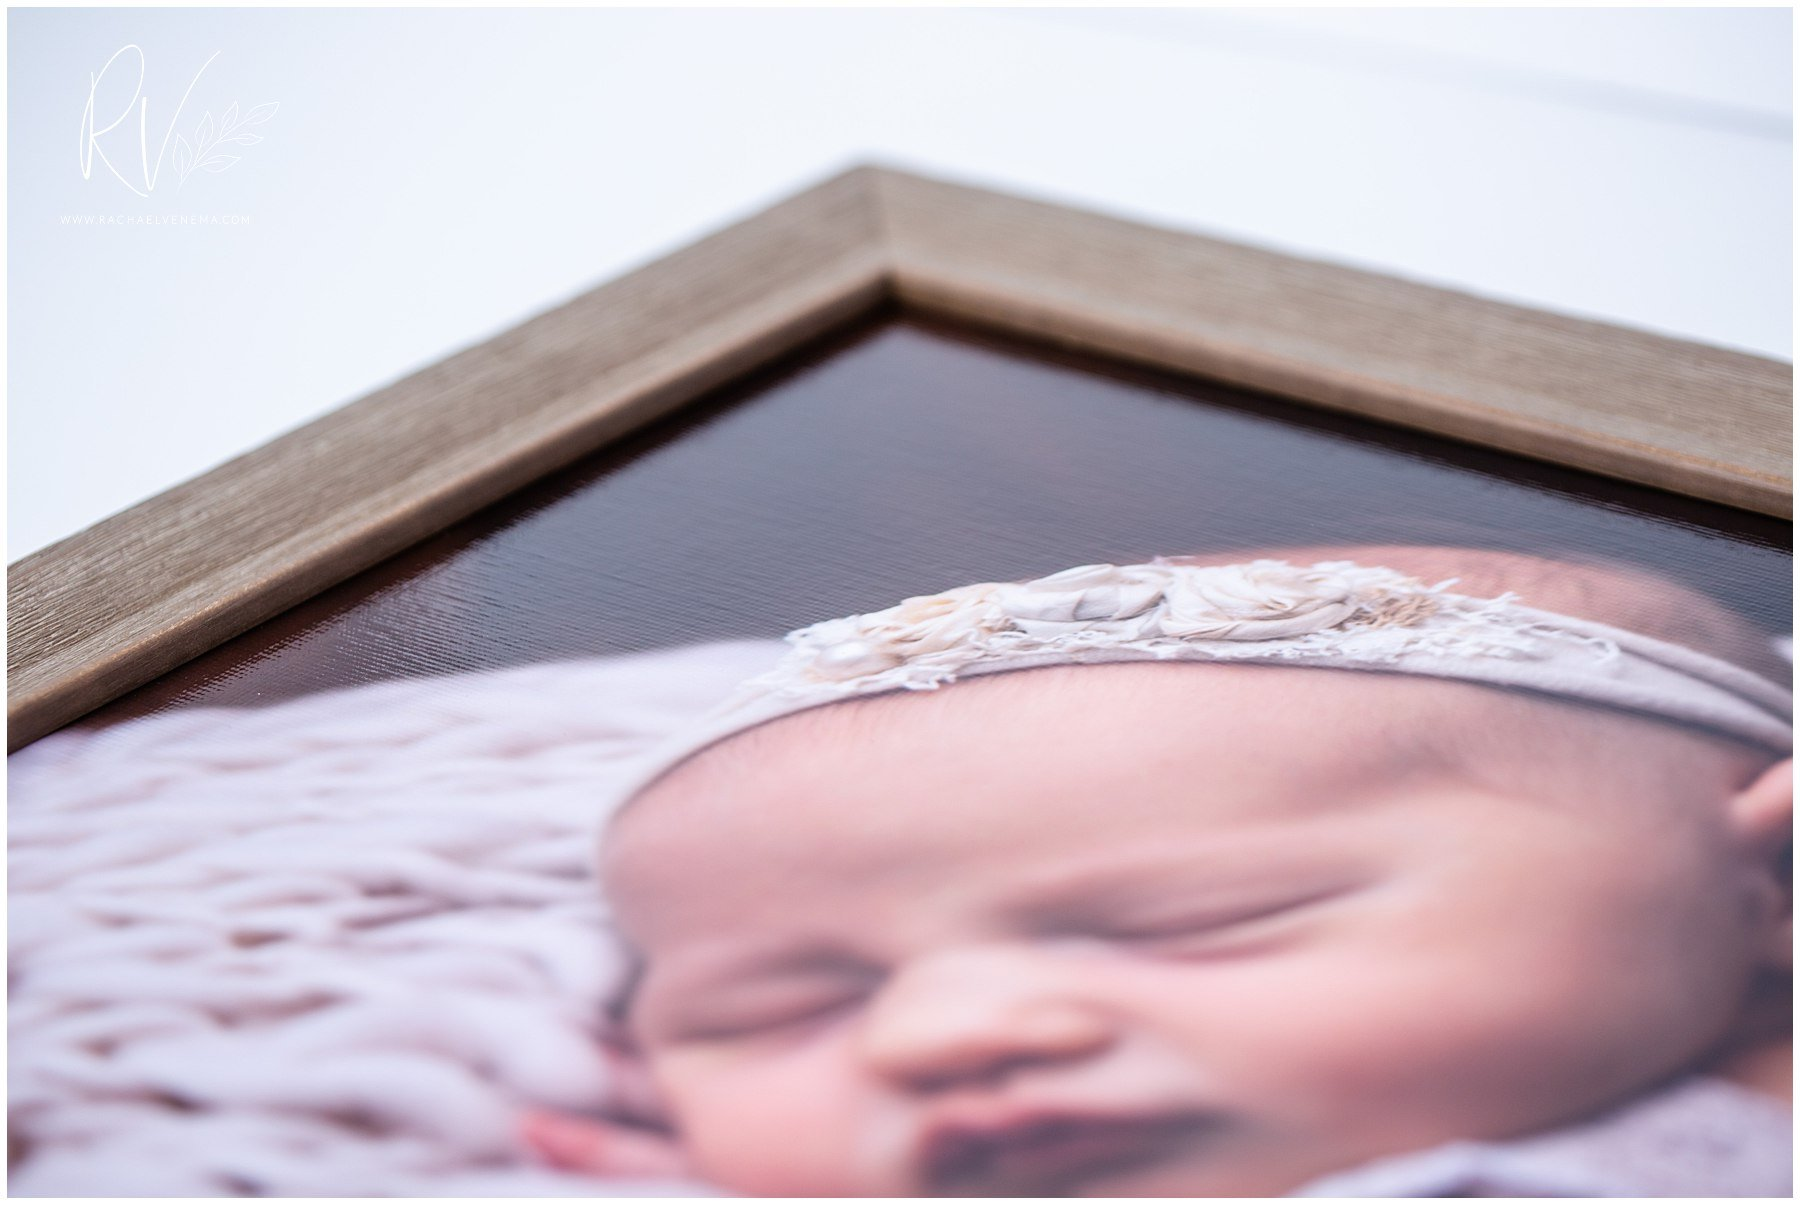 framed canvas prints, canvas prints, print your photos, wall art, ripon photographer, northern ca family photographer, ripon portrait photographer, ripon family photographer, northern california photographer